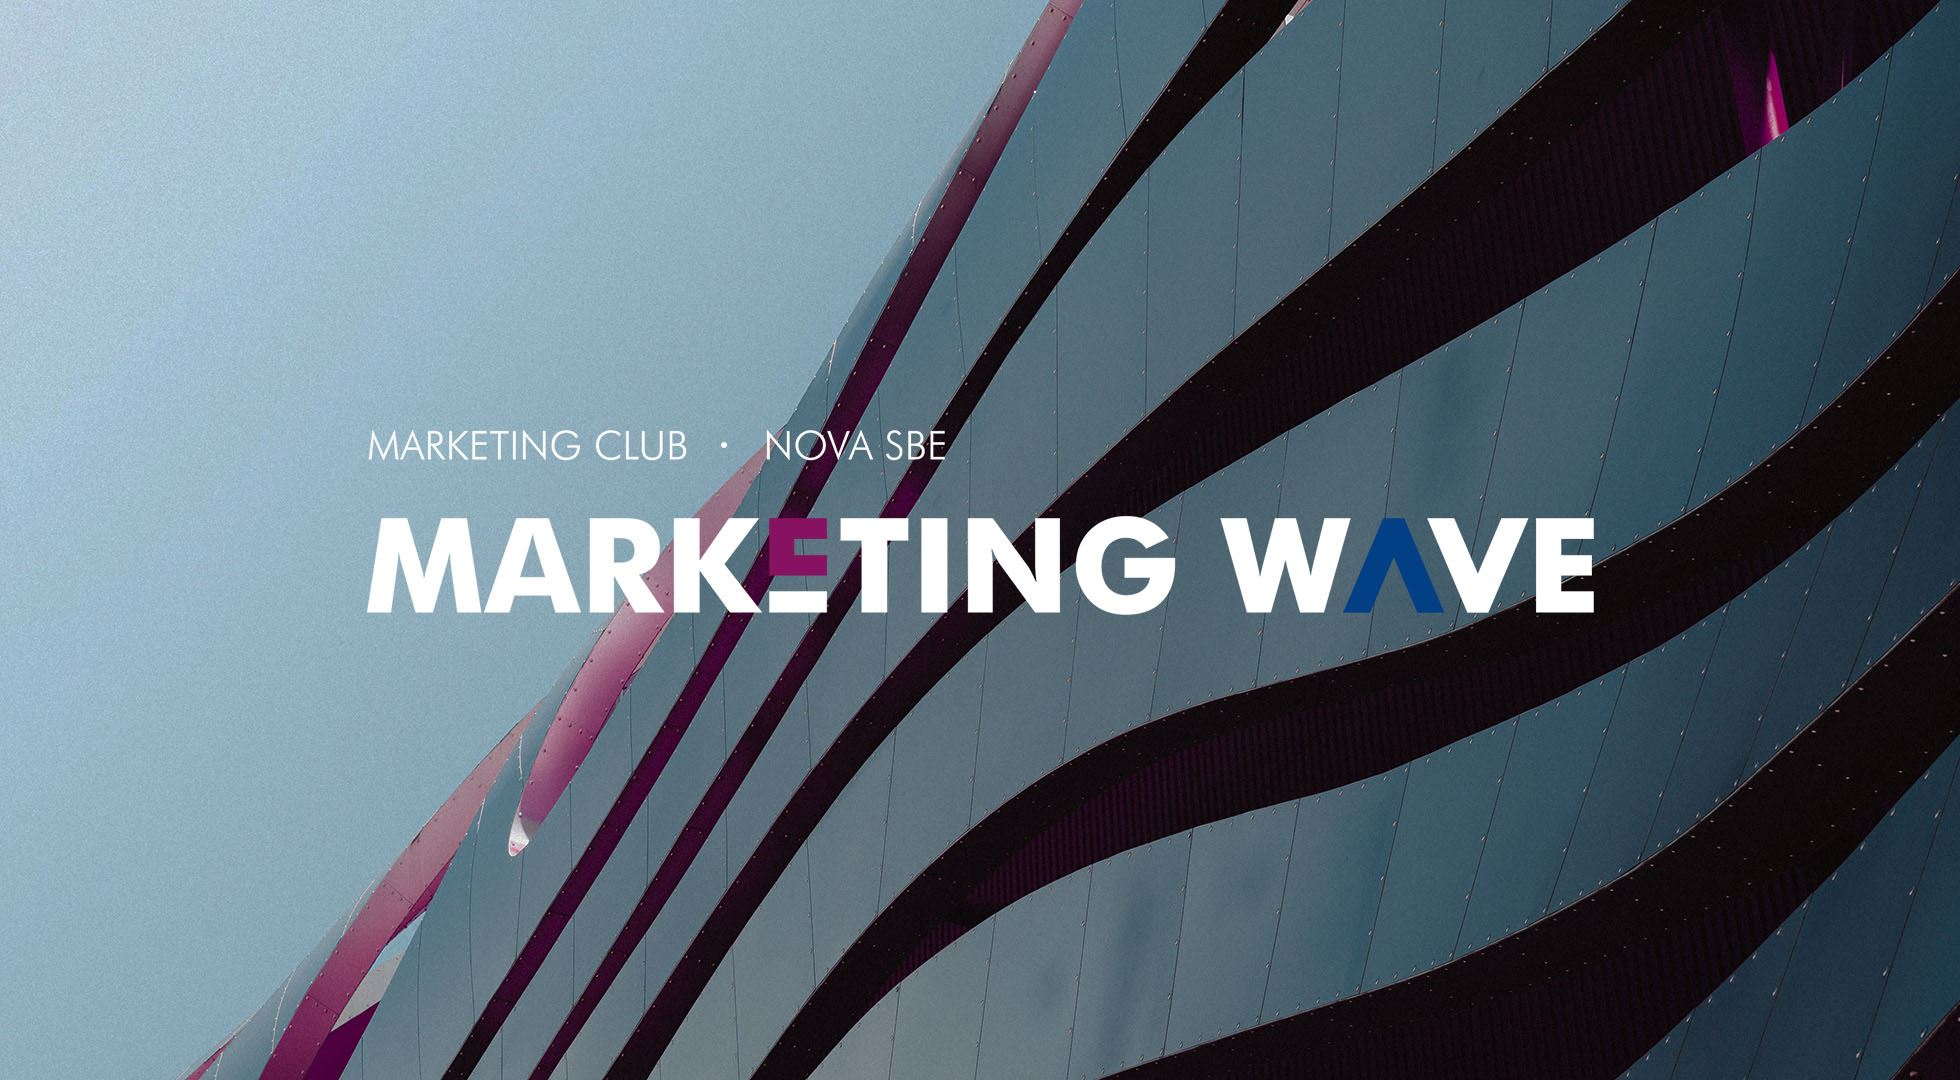 Marketing Wave 2020 is about to take place